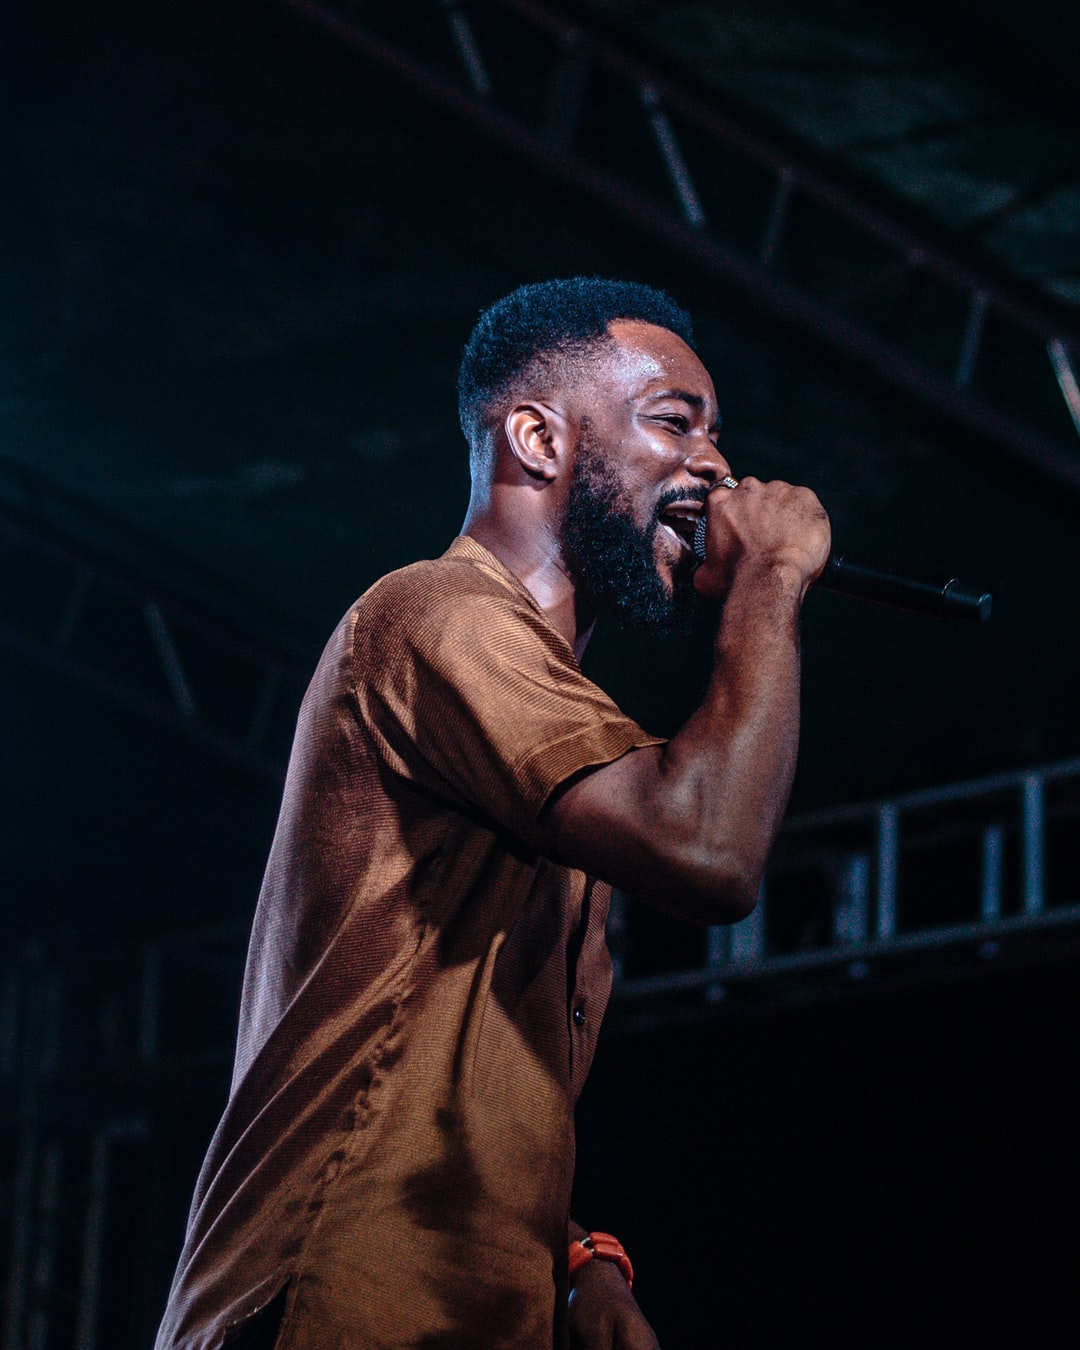 It was a night of many performances at gidifest in Lagos. The vibes were heavy and the mood was chill, perfect for getting nice concert photos.